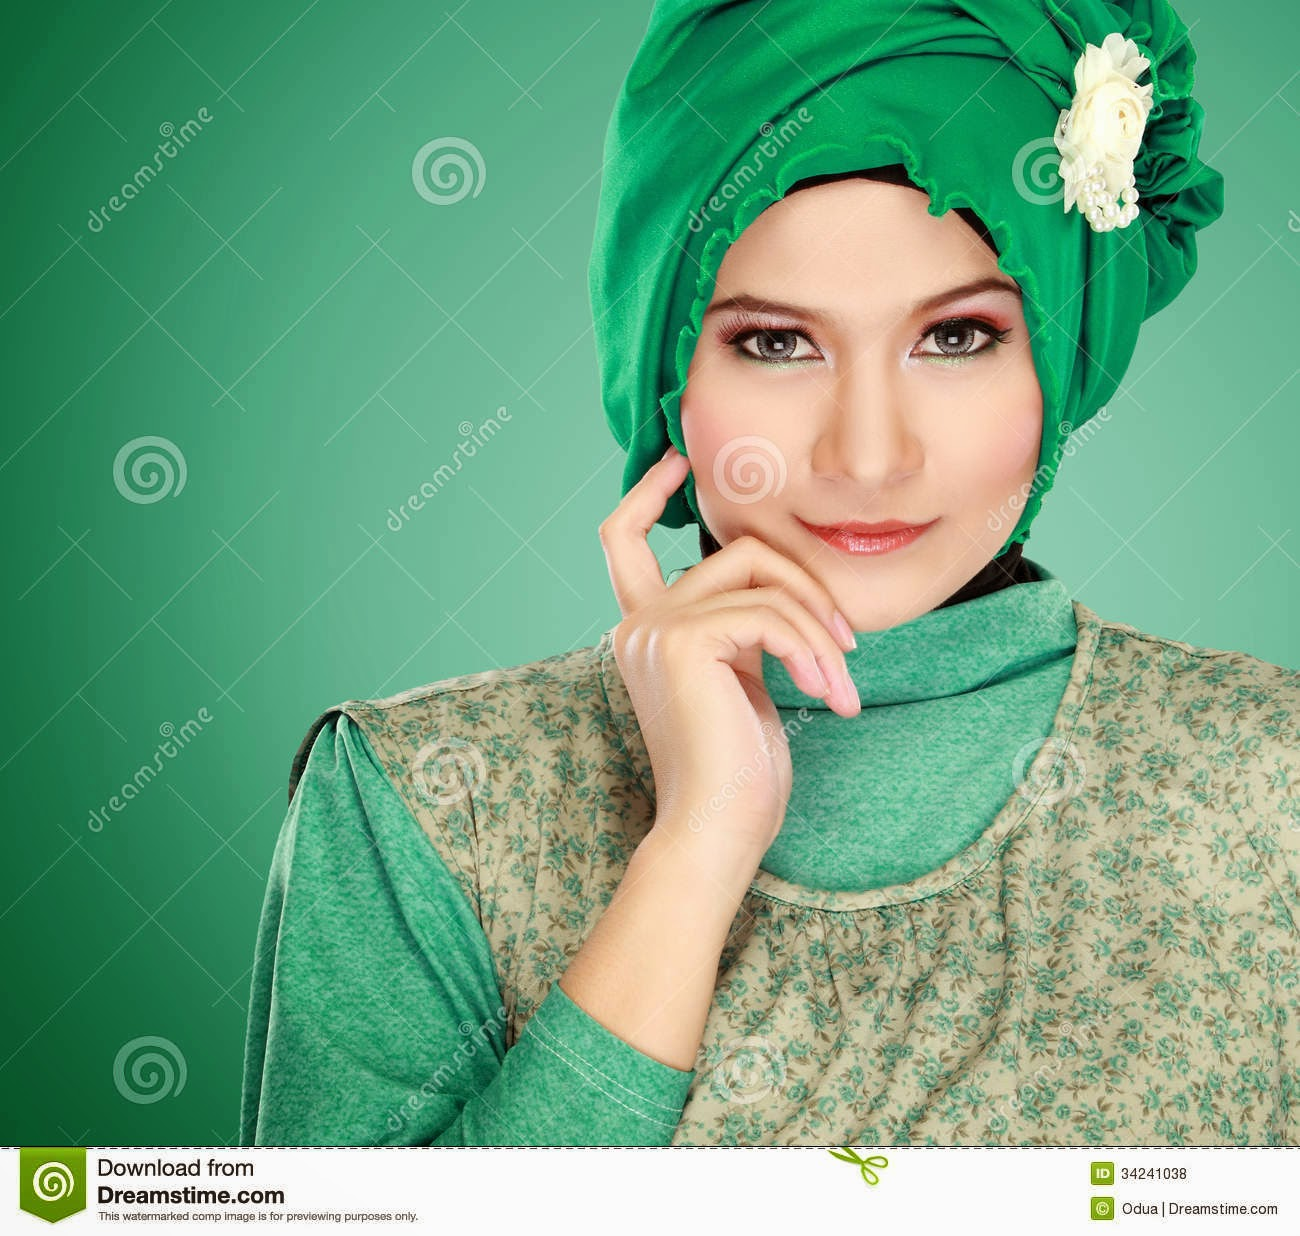 muslim single women in steep falls 'i felt contempt for women in  strap of sundress falls off shoulder while she hugs  she could get' on netflix show now she's a single mom.